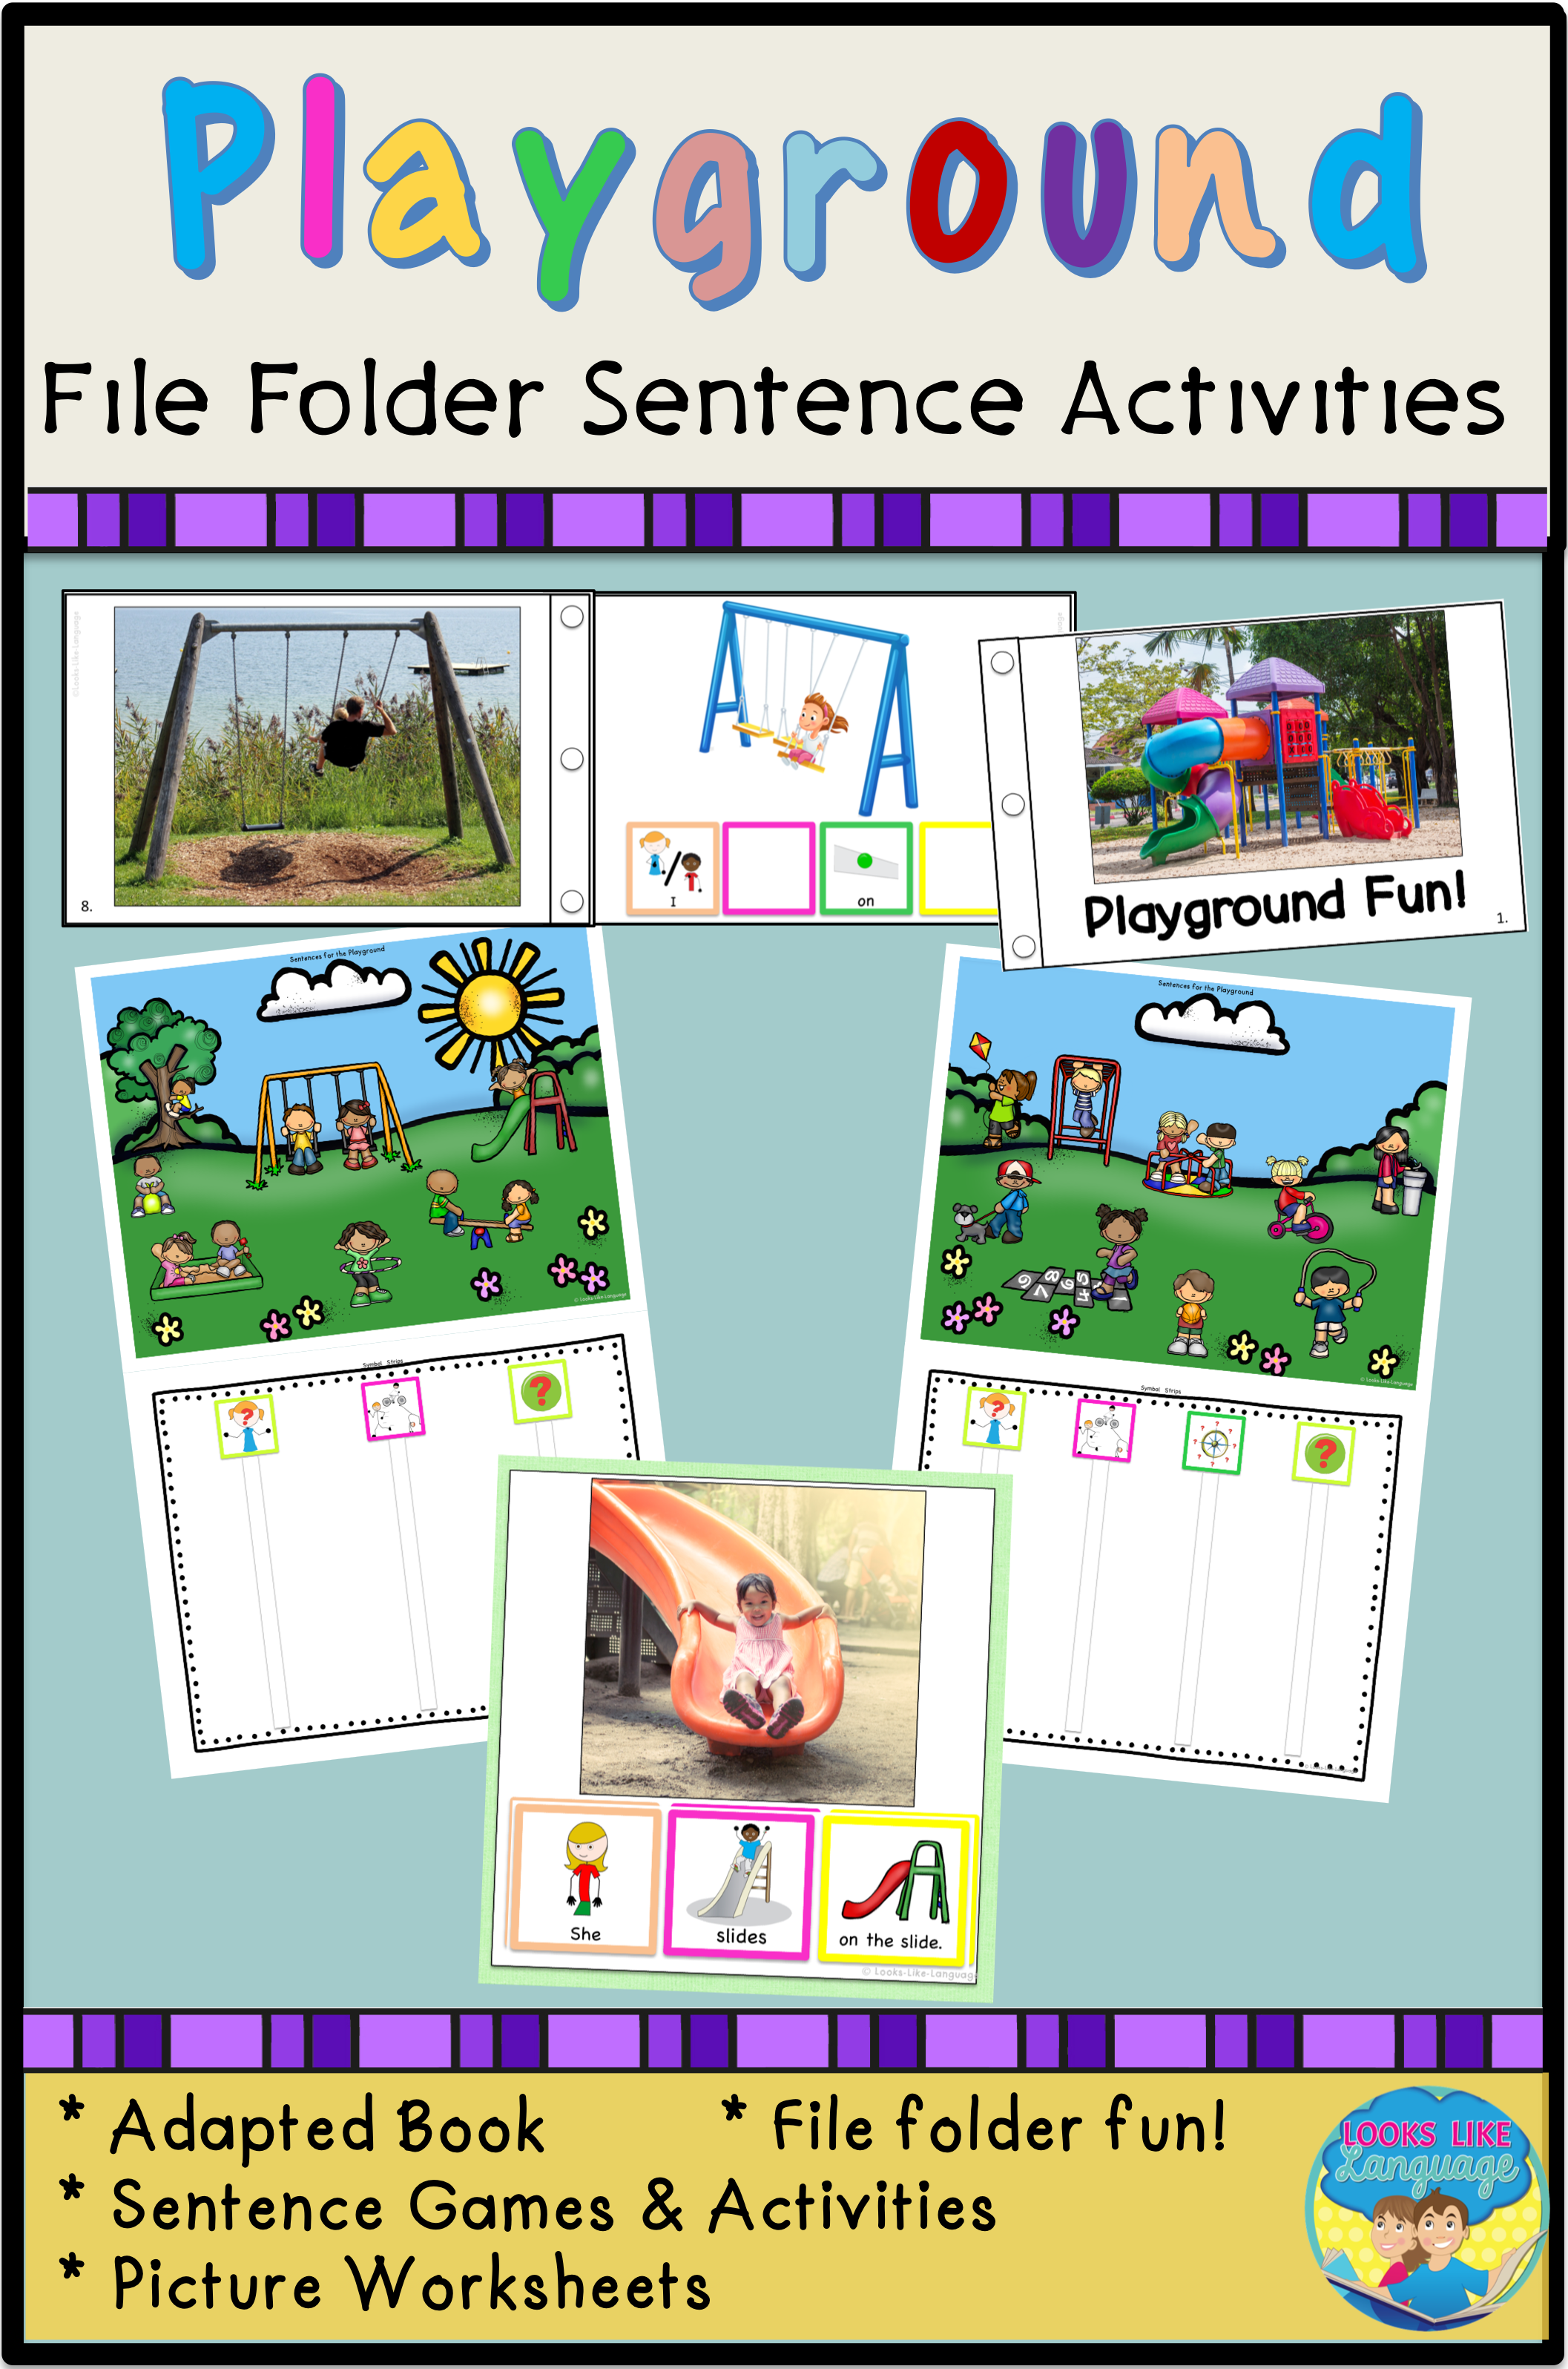 File Folder Games For Special Education Playground Sentence Activities Special Education Resources Activities Sentence Building Activities [ 3193 x 2114 Pixel ]